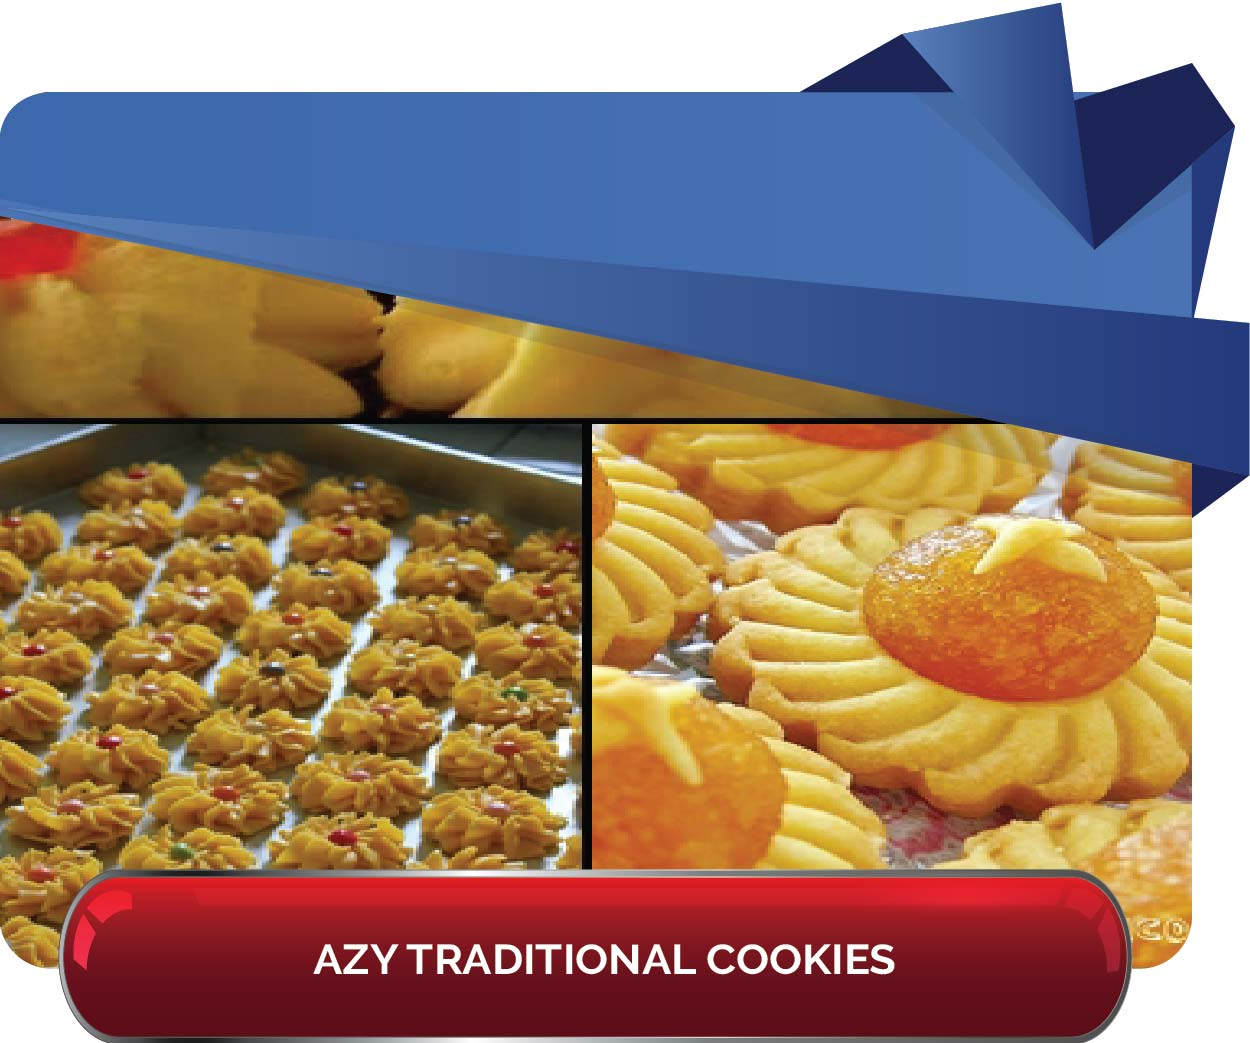 azy traditional cookies 01